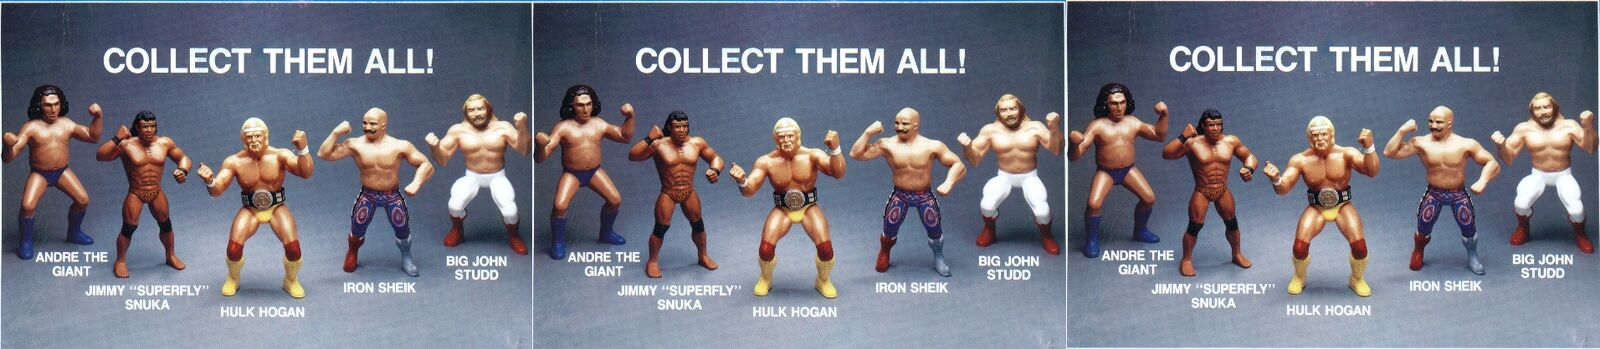 Jays WWF Wrestling Action Figures